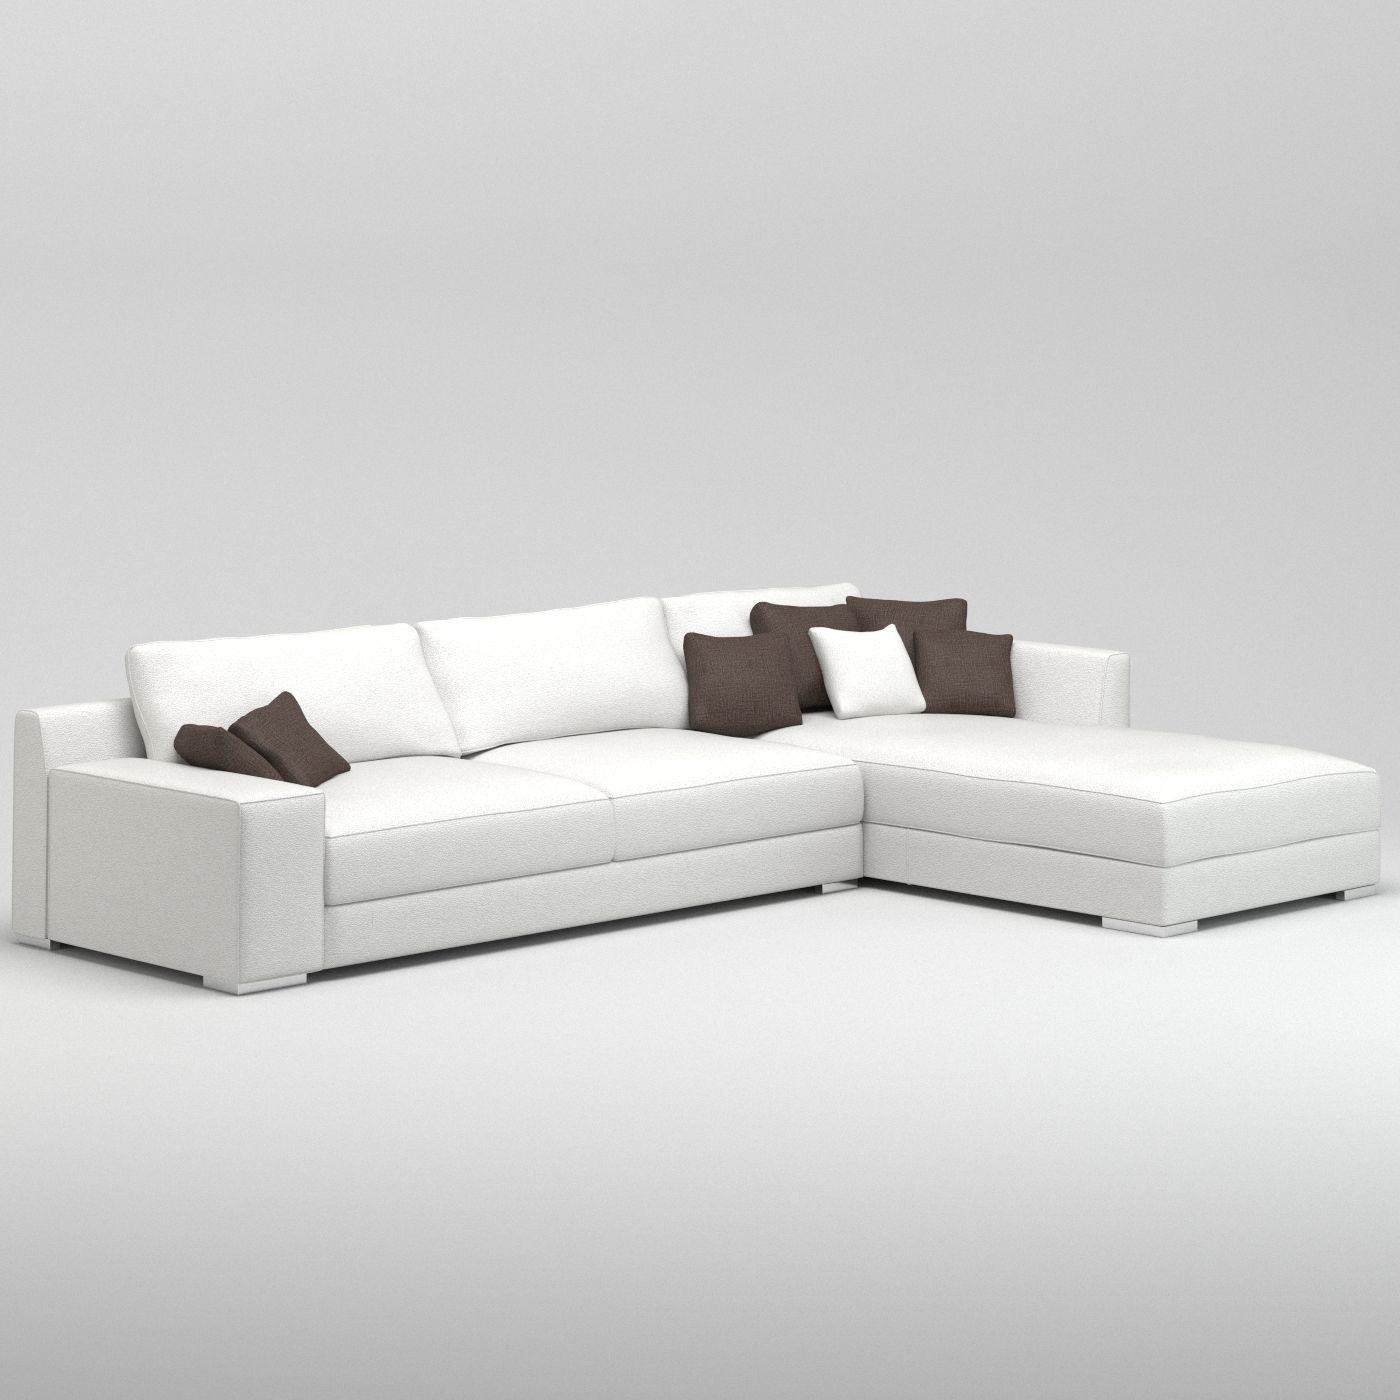 Furniture : Couchtuner Queen Sugar Sectional Sofa Greenville Sc Intended For Greenville Sc Sectional Sofas (Image 4 of 10)